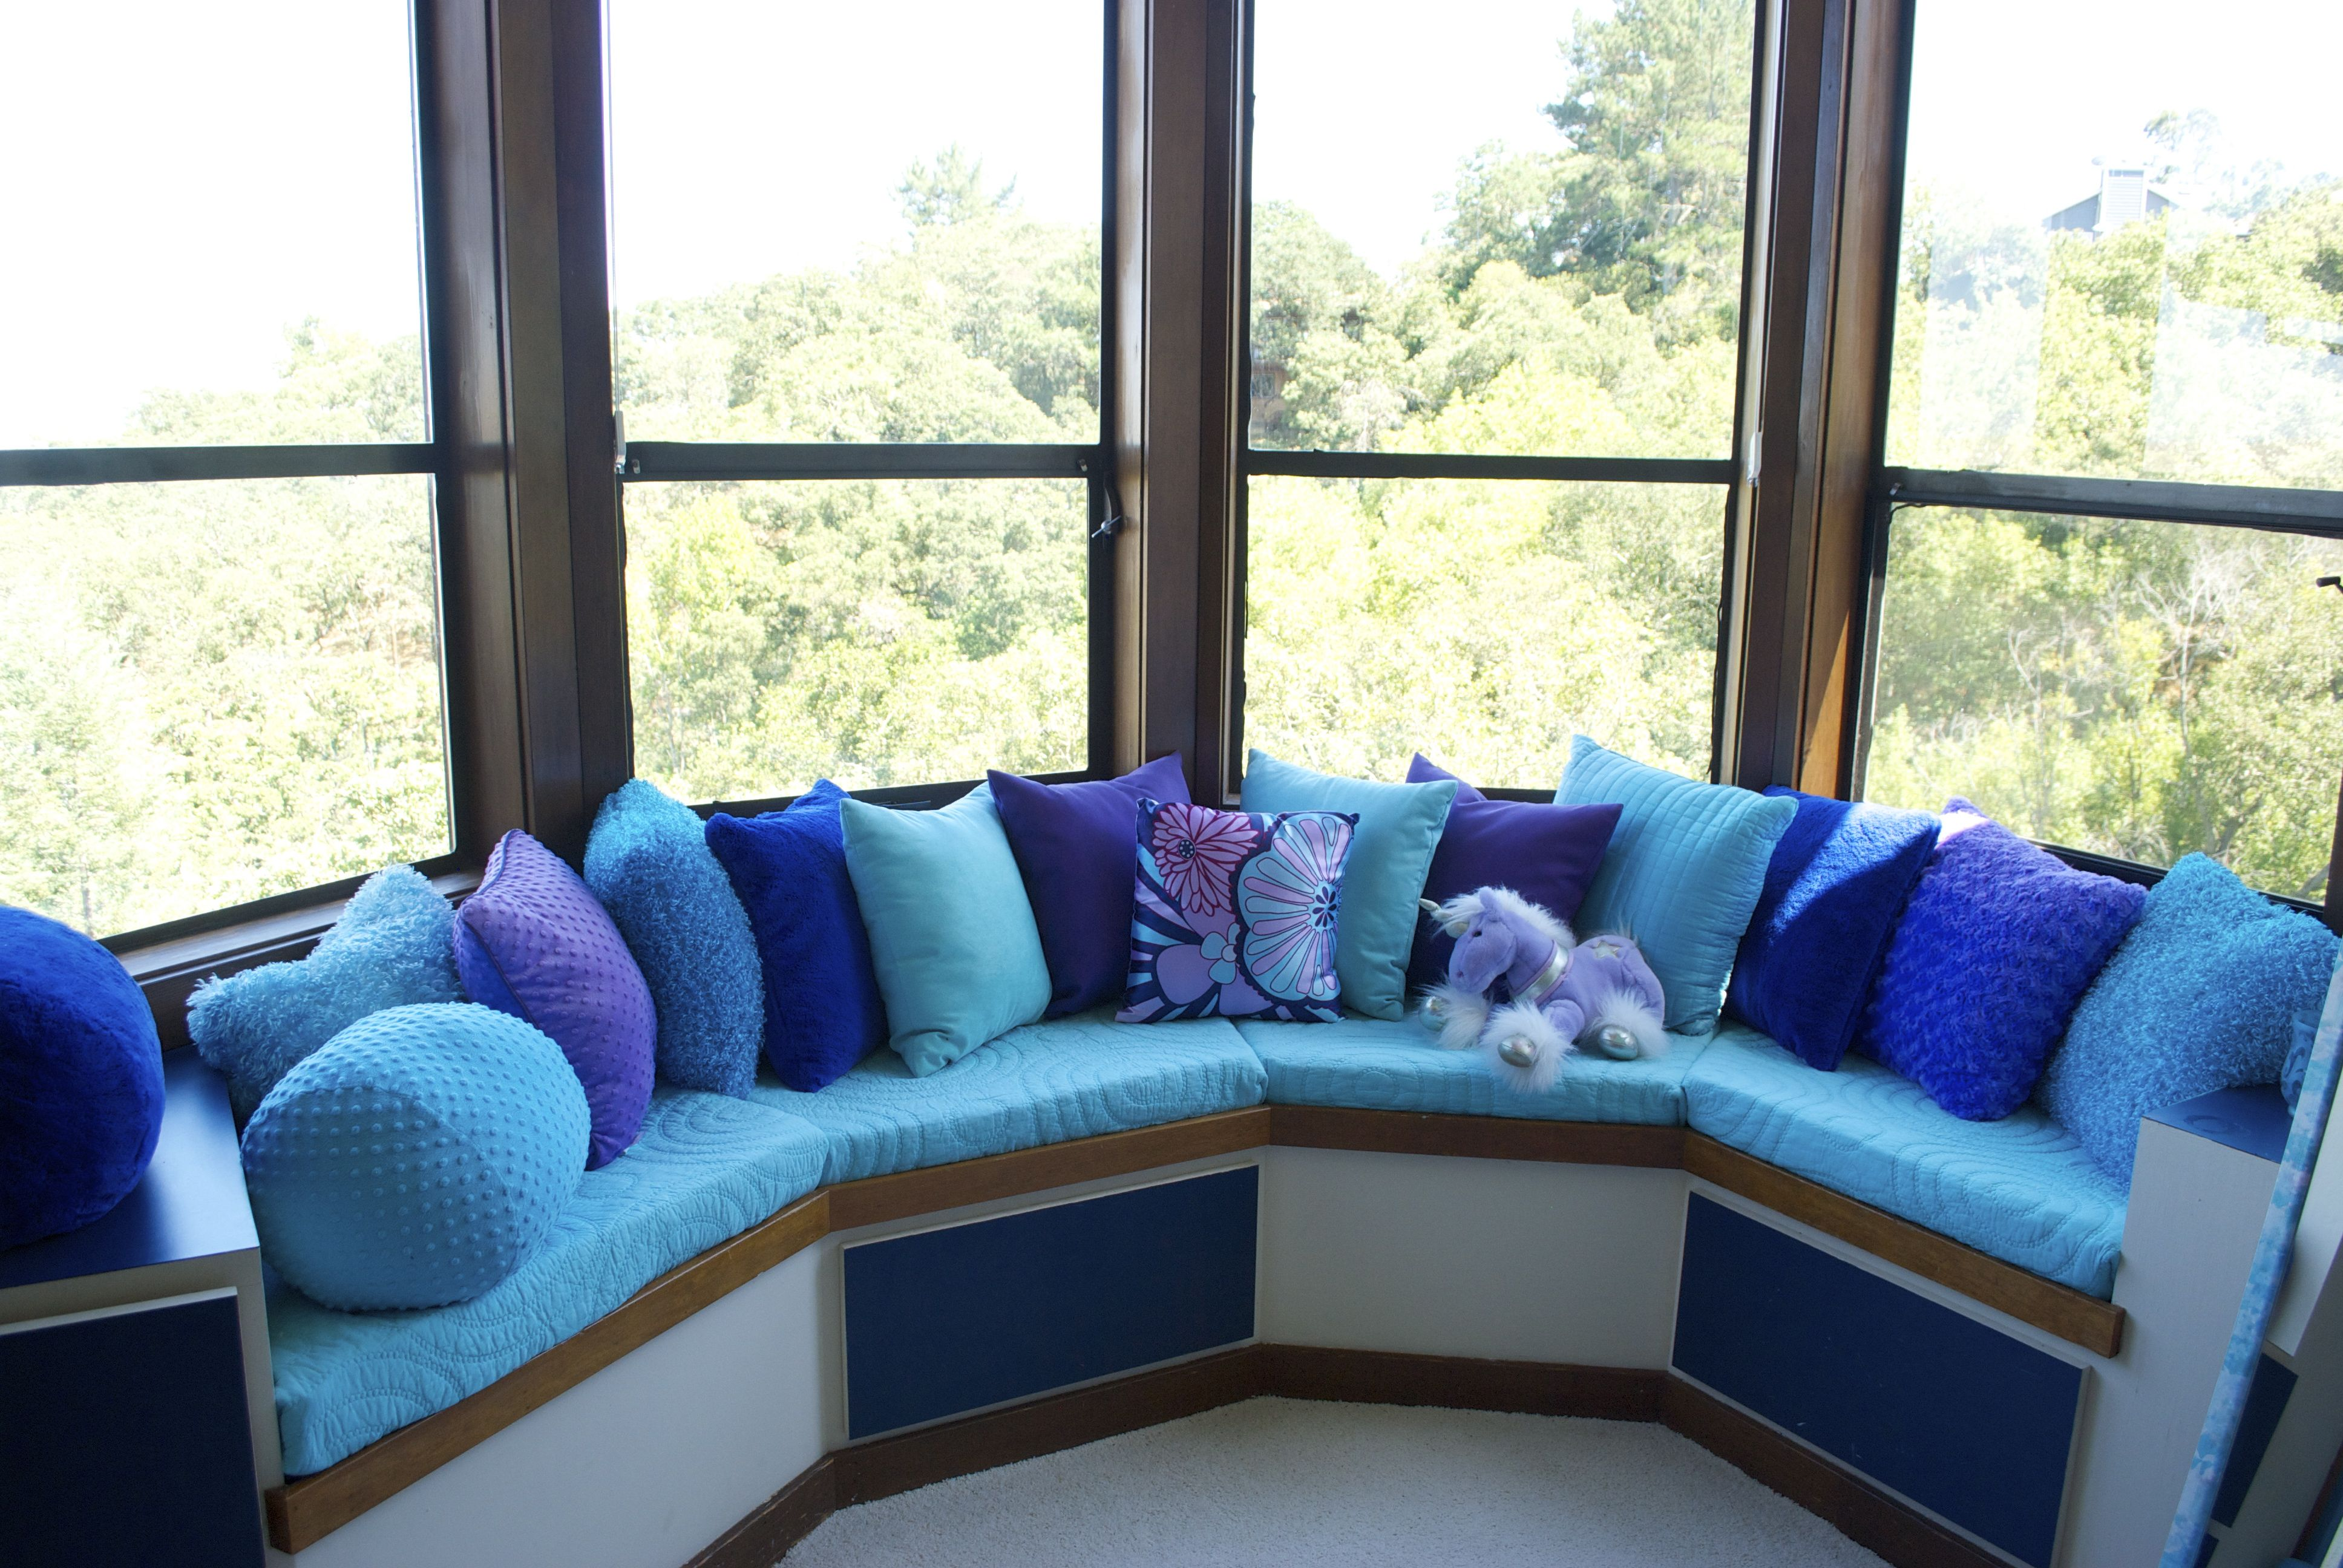 bay window sofa seating slipcovers for reclining sofas the cheapest and easiest way to cover your seat